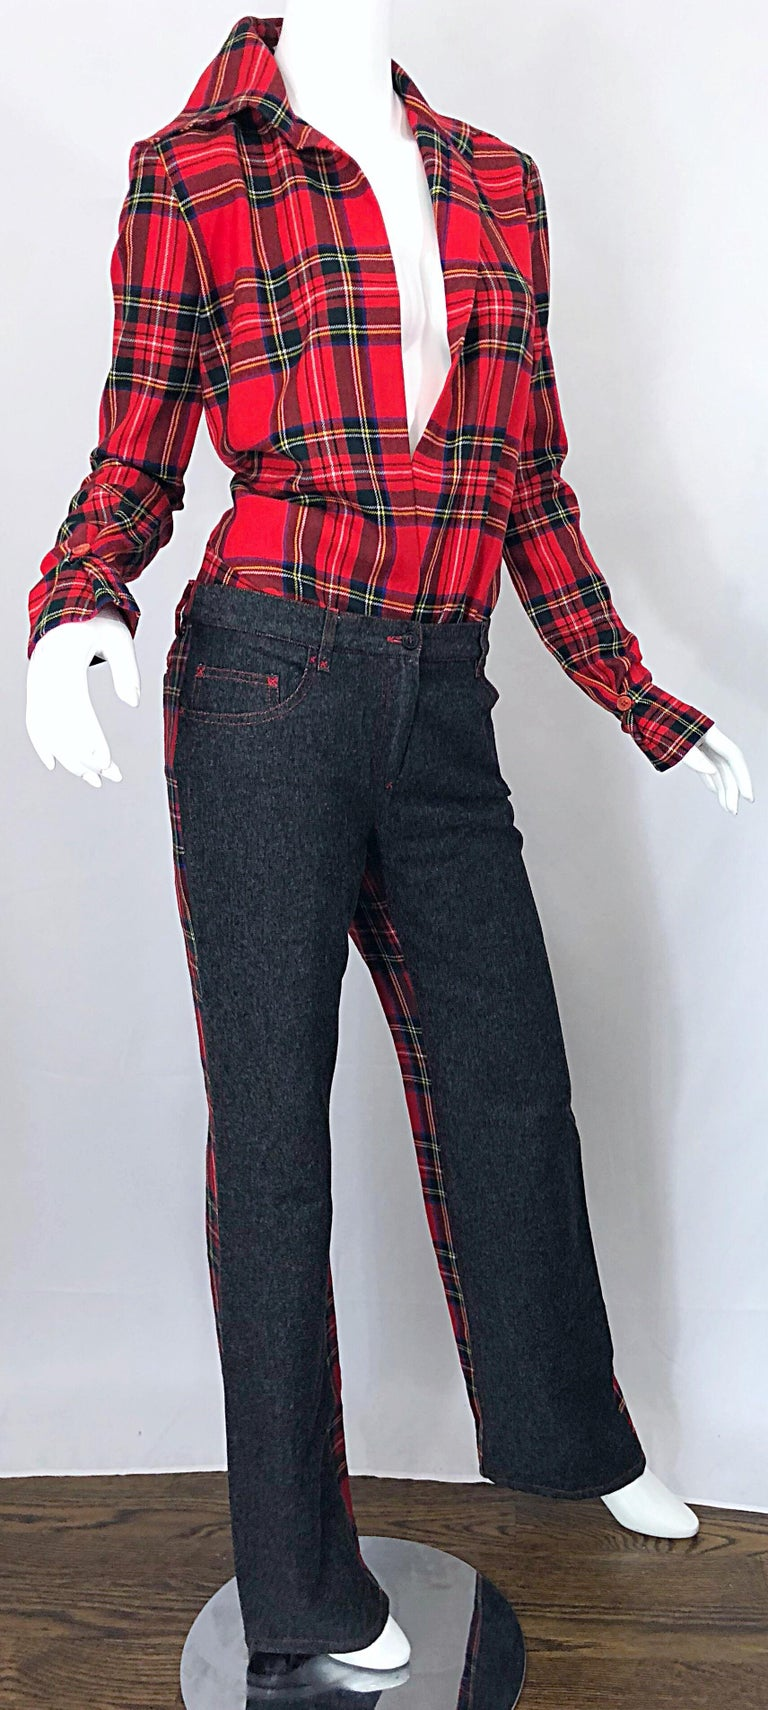 Rare 1990s Dolce & Gabbana Red Tartan Plaid Wool + Denim Flared Jeans and Shirt For Sale 5